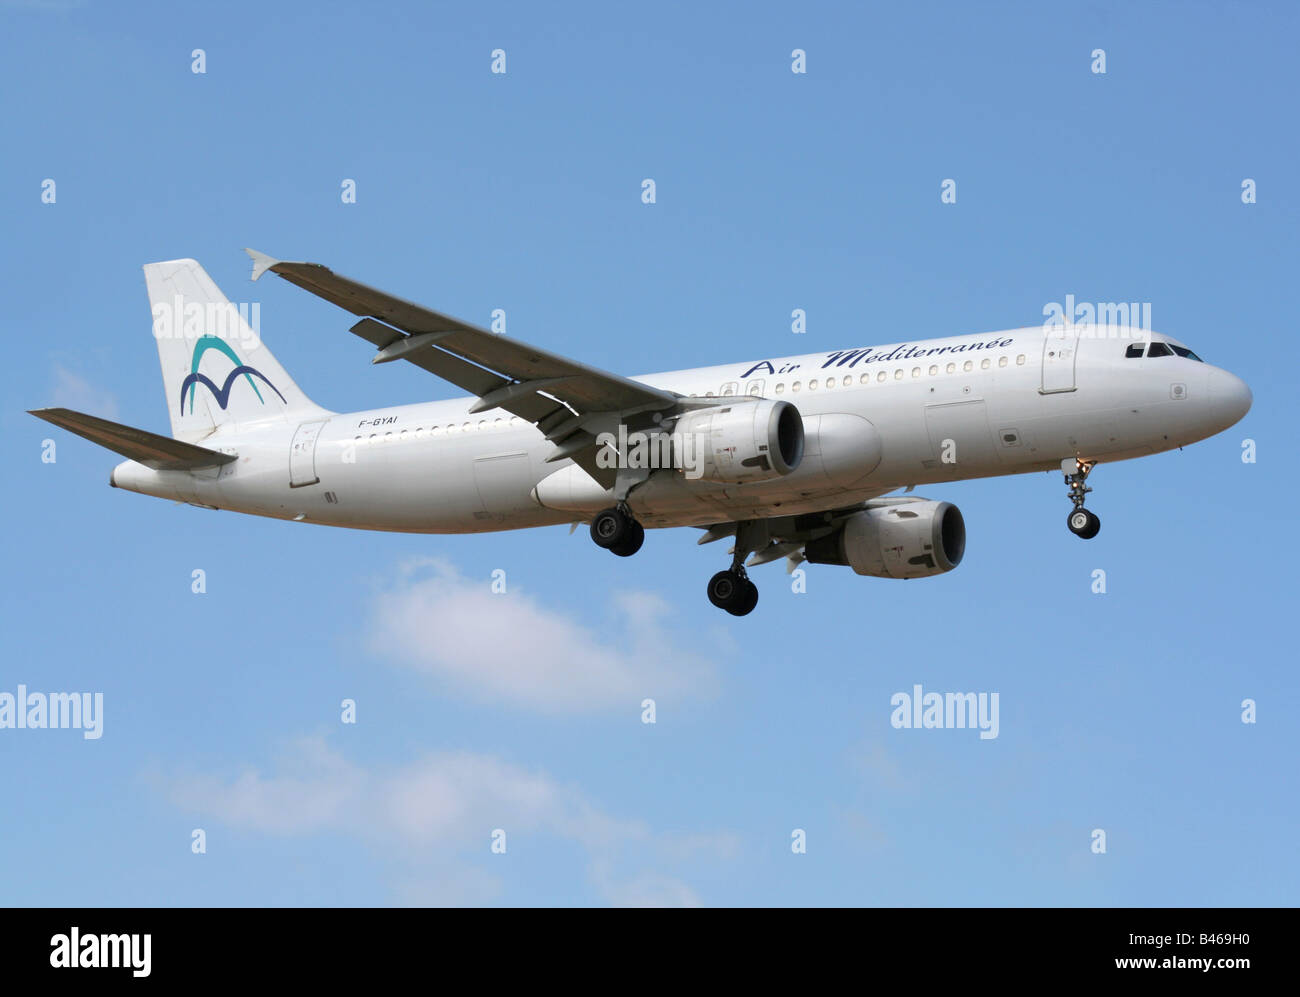 Air Mediterranee Airbus A320 on arrival - Stock Image